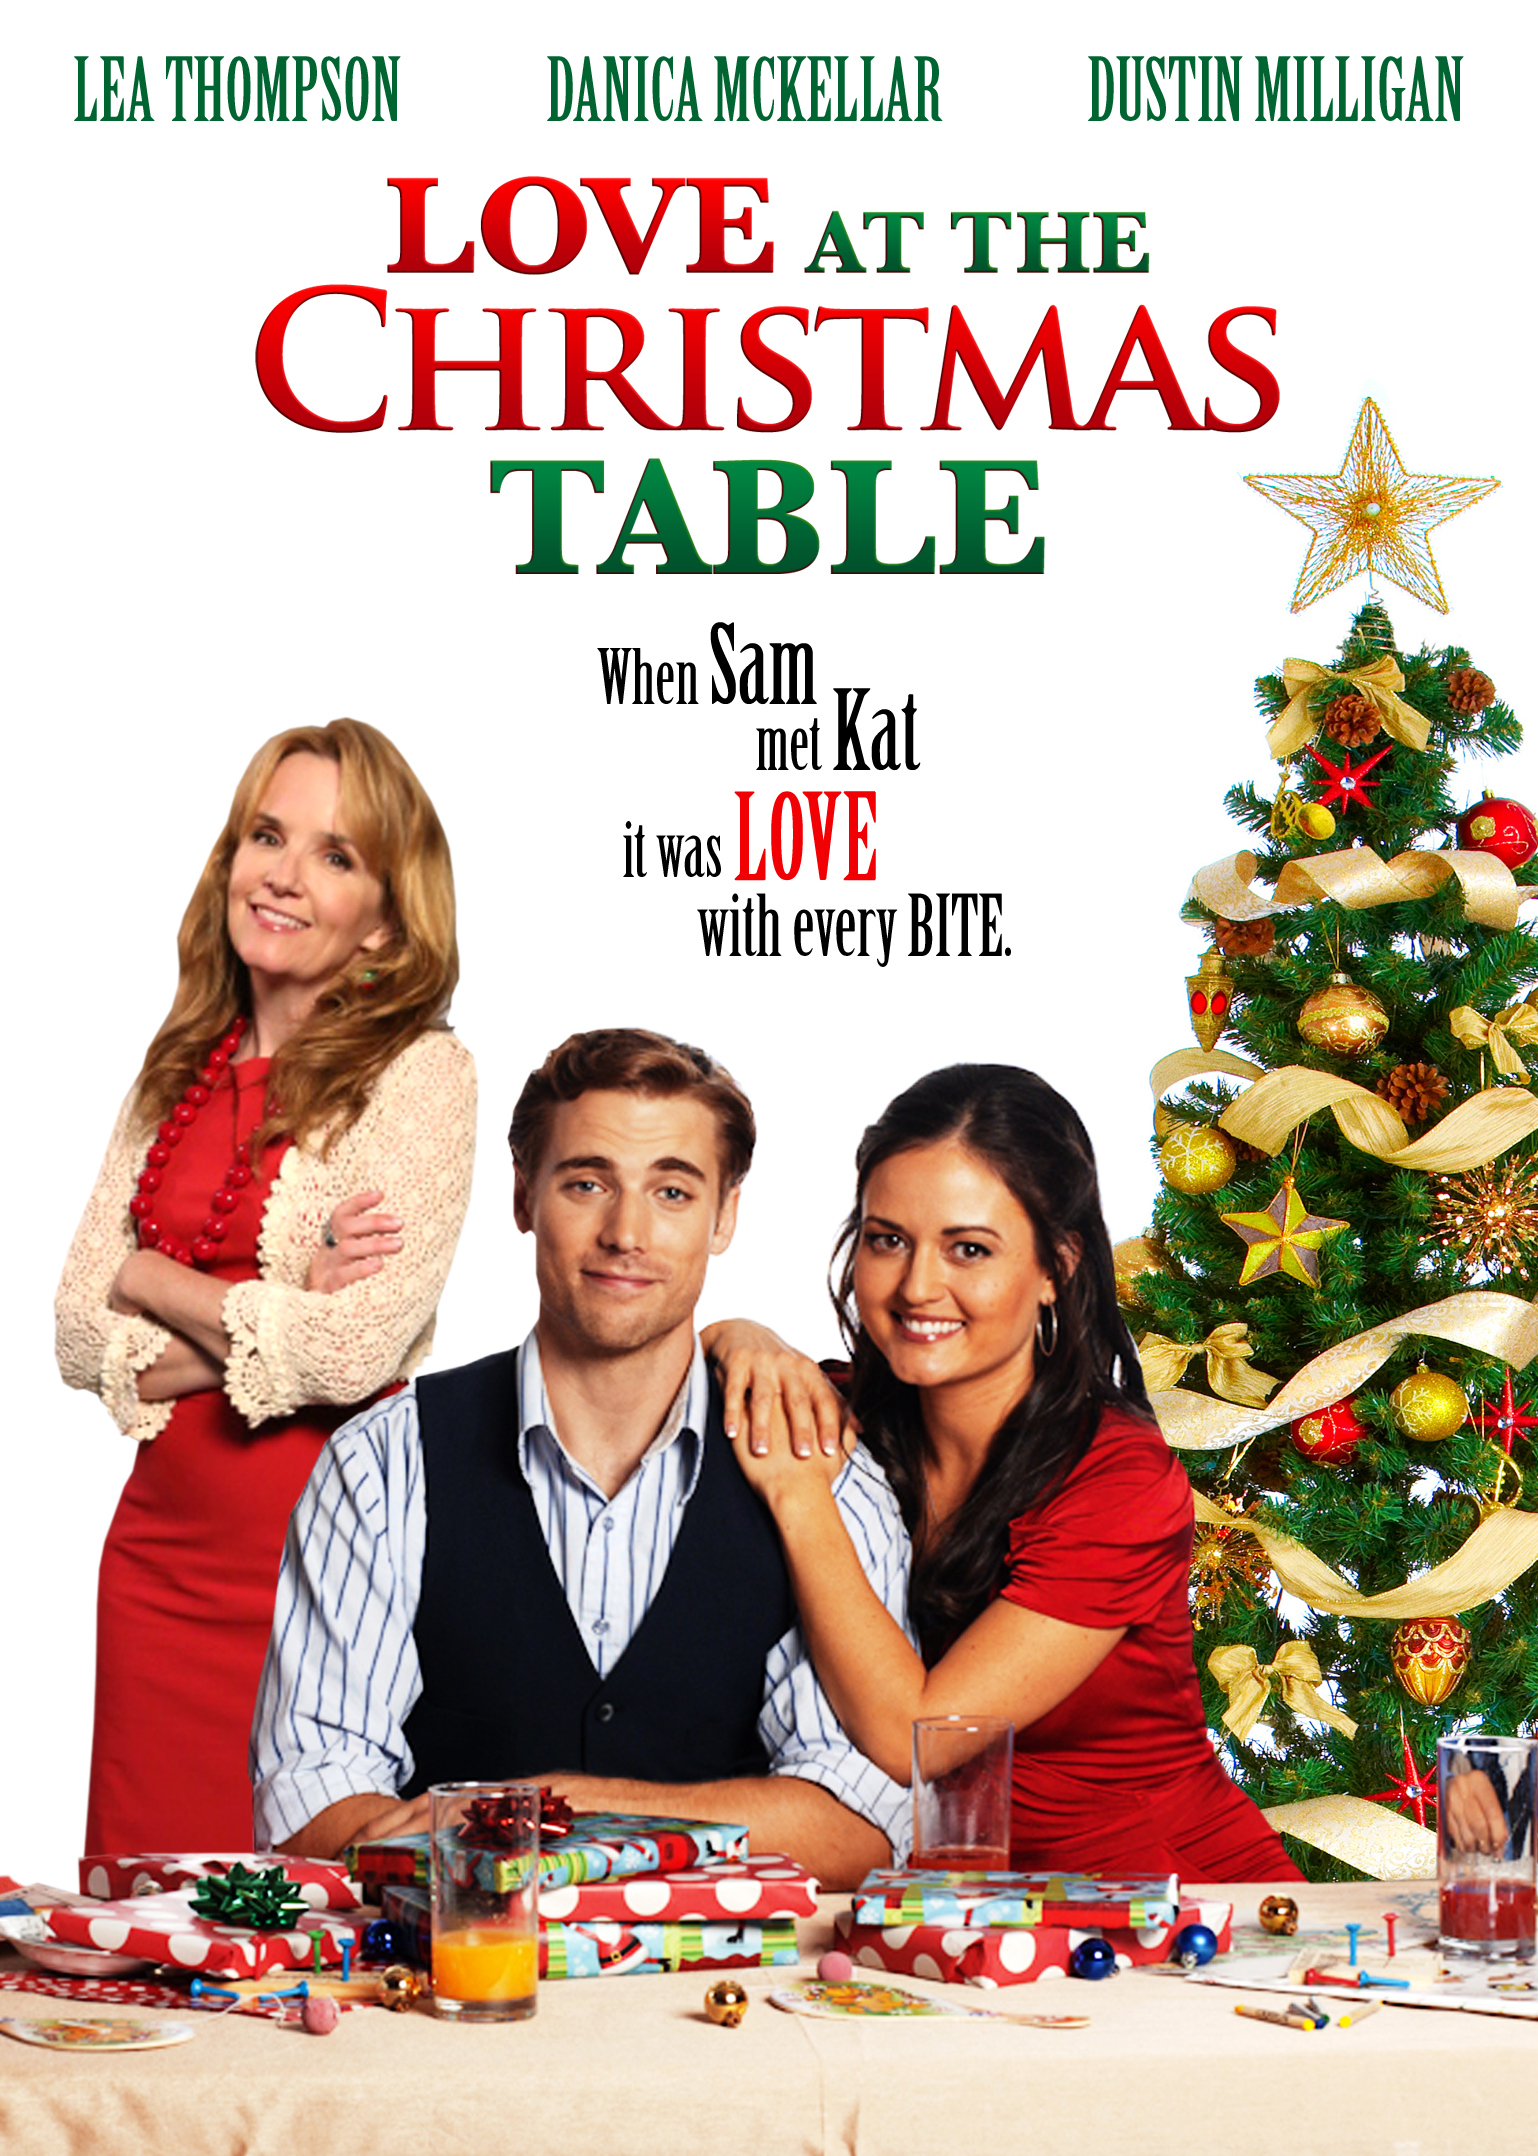 Love at the Christmas Table (TV Movie 2012) - IMDb